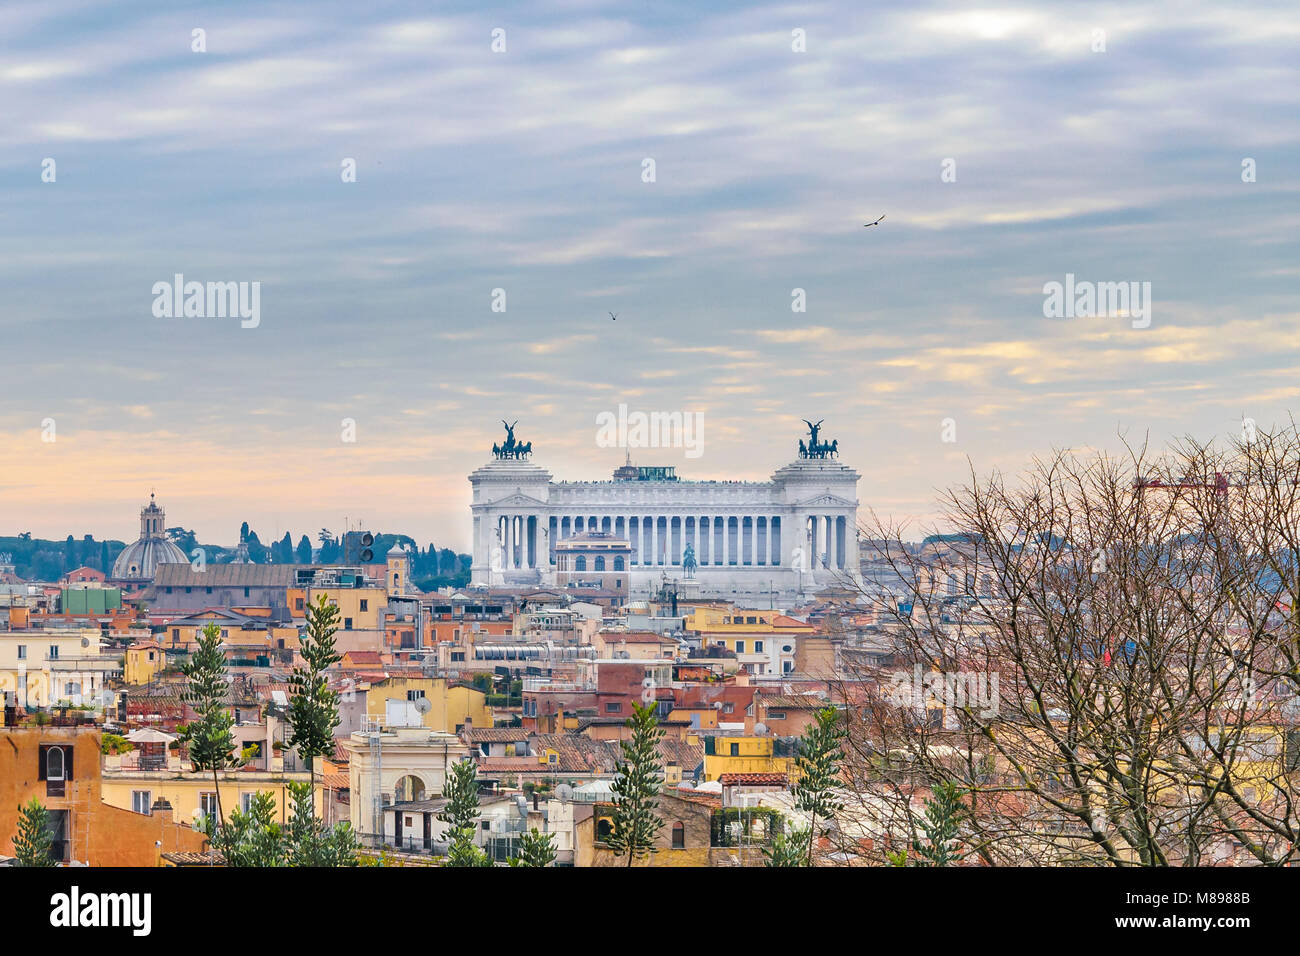 Winter season rome aerial view from monte pincio viewpoint with vittorio emanuele monument at background - Stock Image